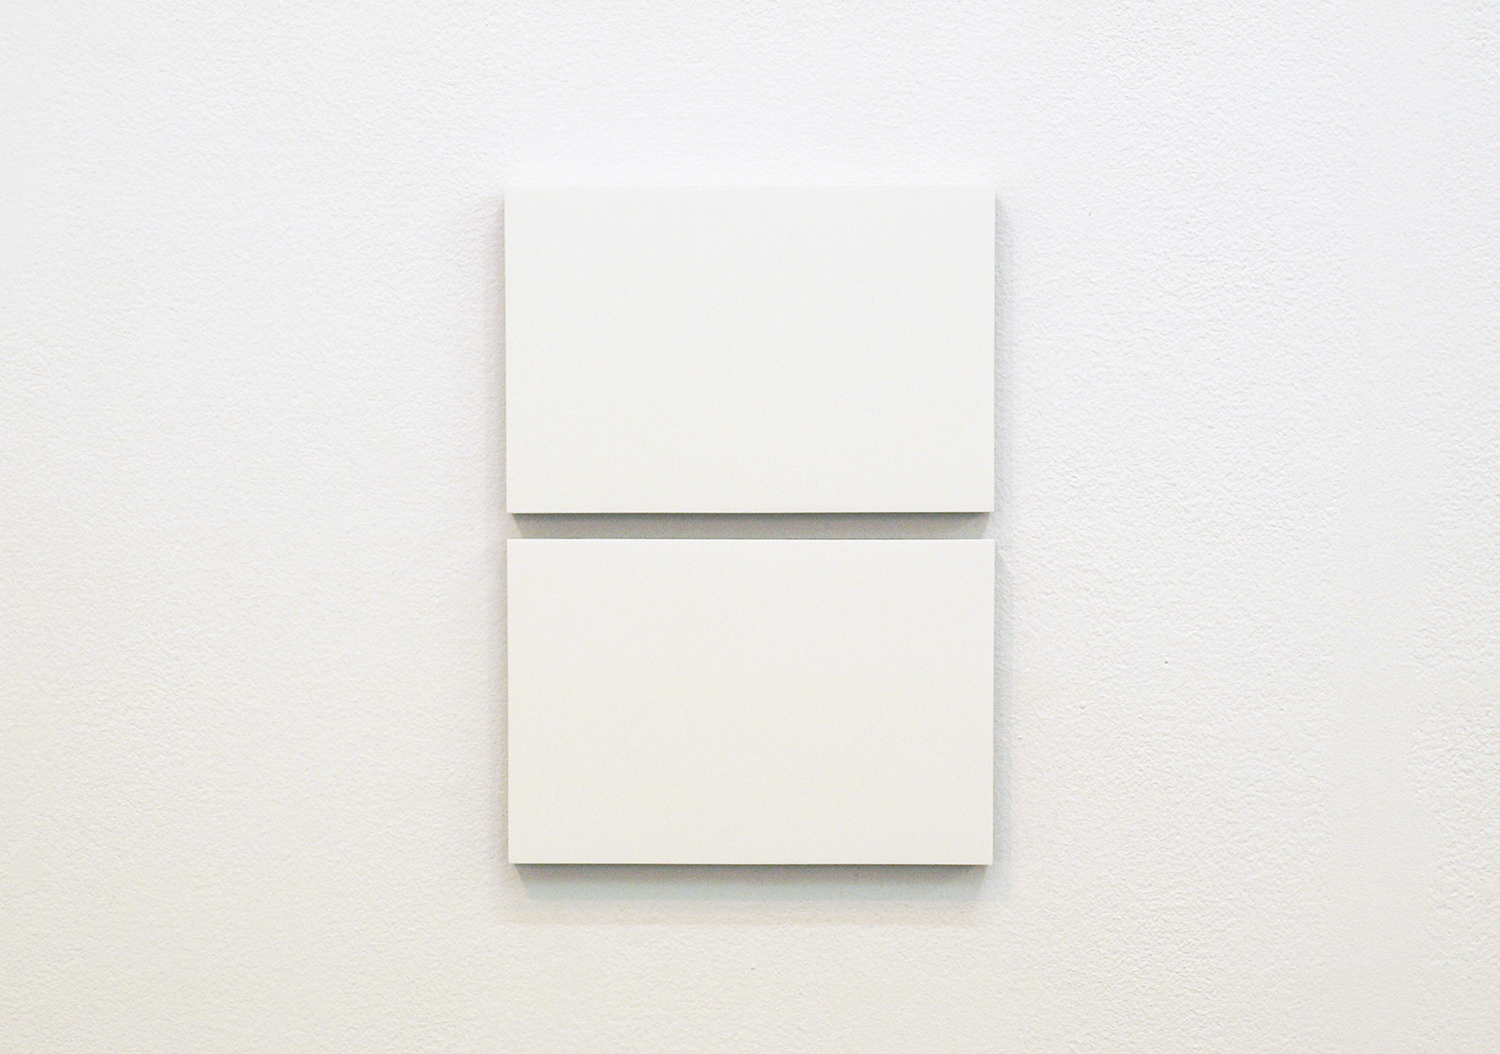 2col-09(off white & white)casein, pigment on canvas & aluminum (2 parts, 10 x 15 cm each)